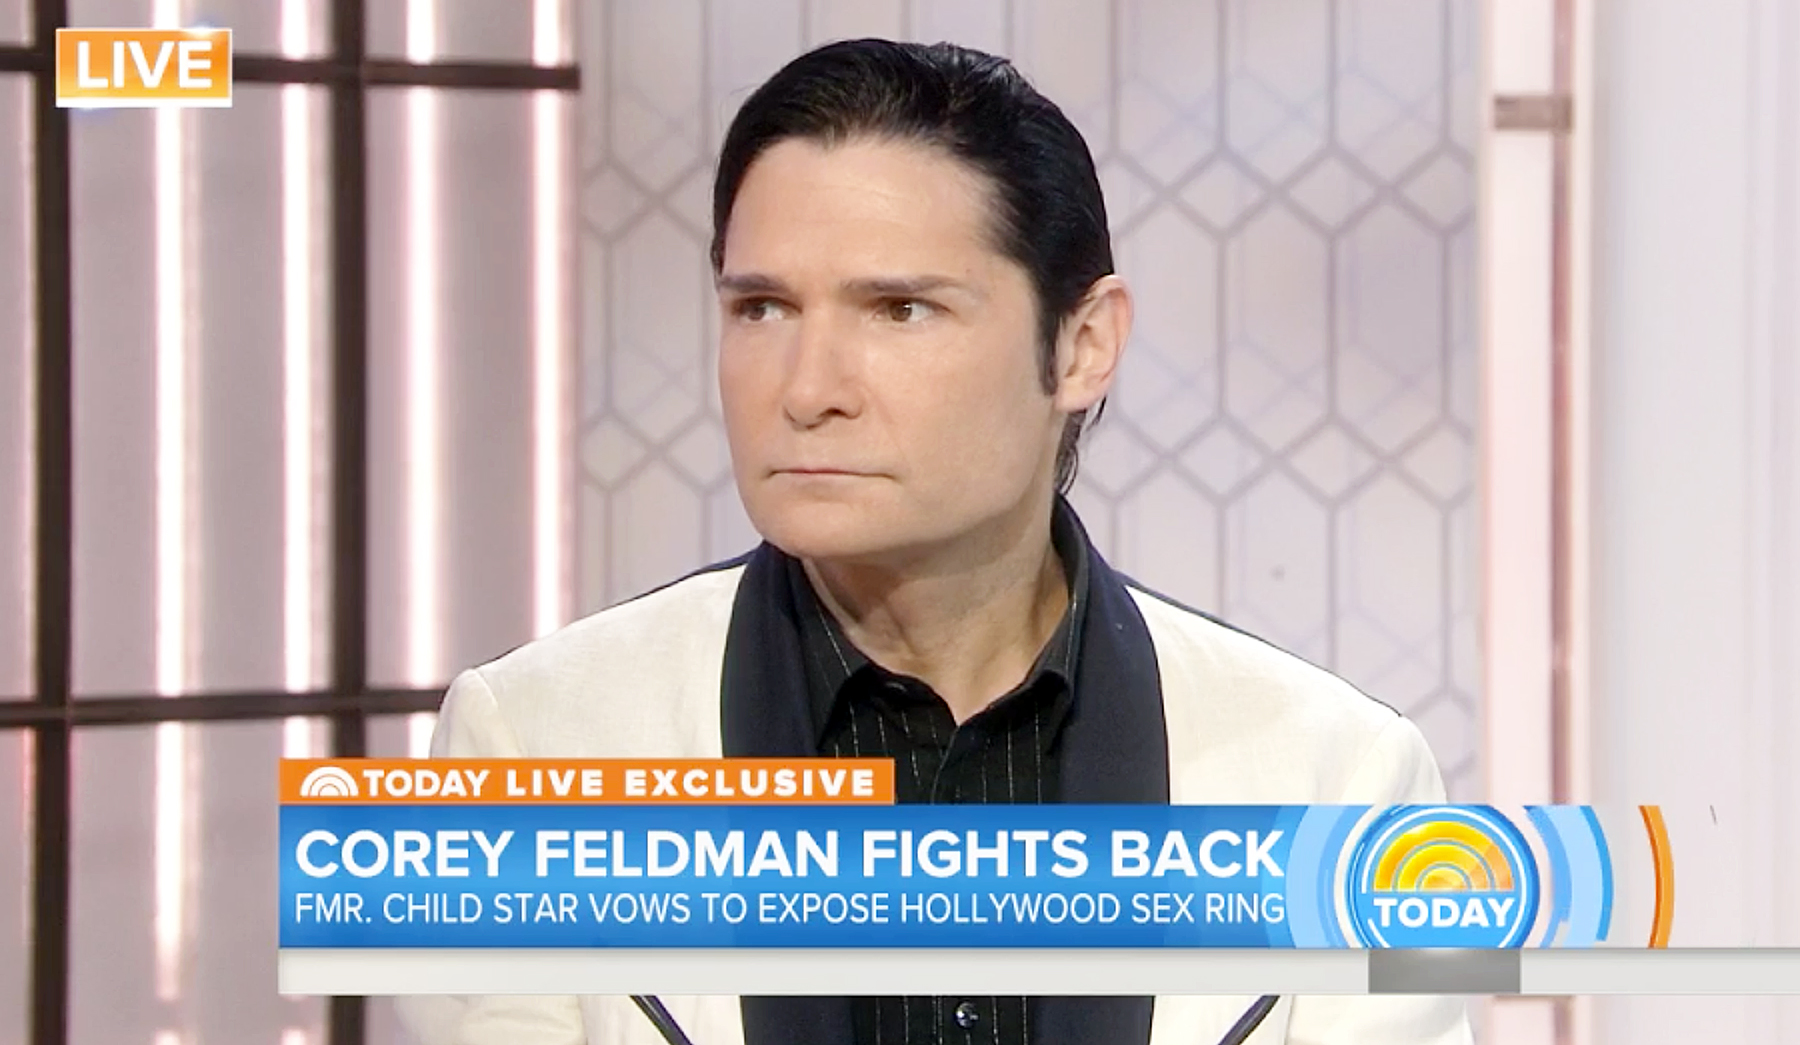 The Star of the Lord of the Rings spoke about pedophilia in Hollywood